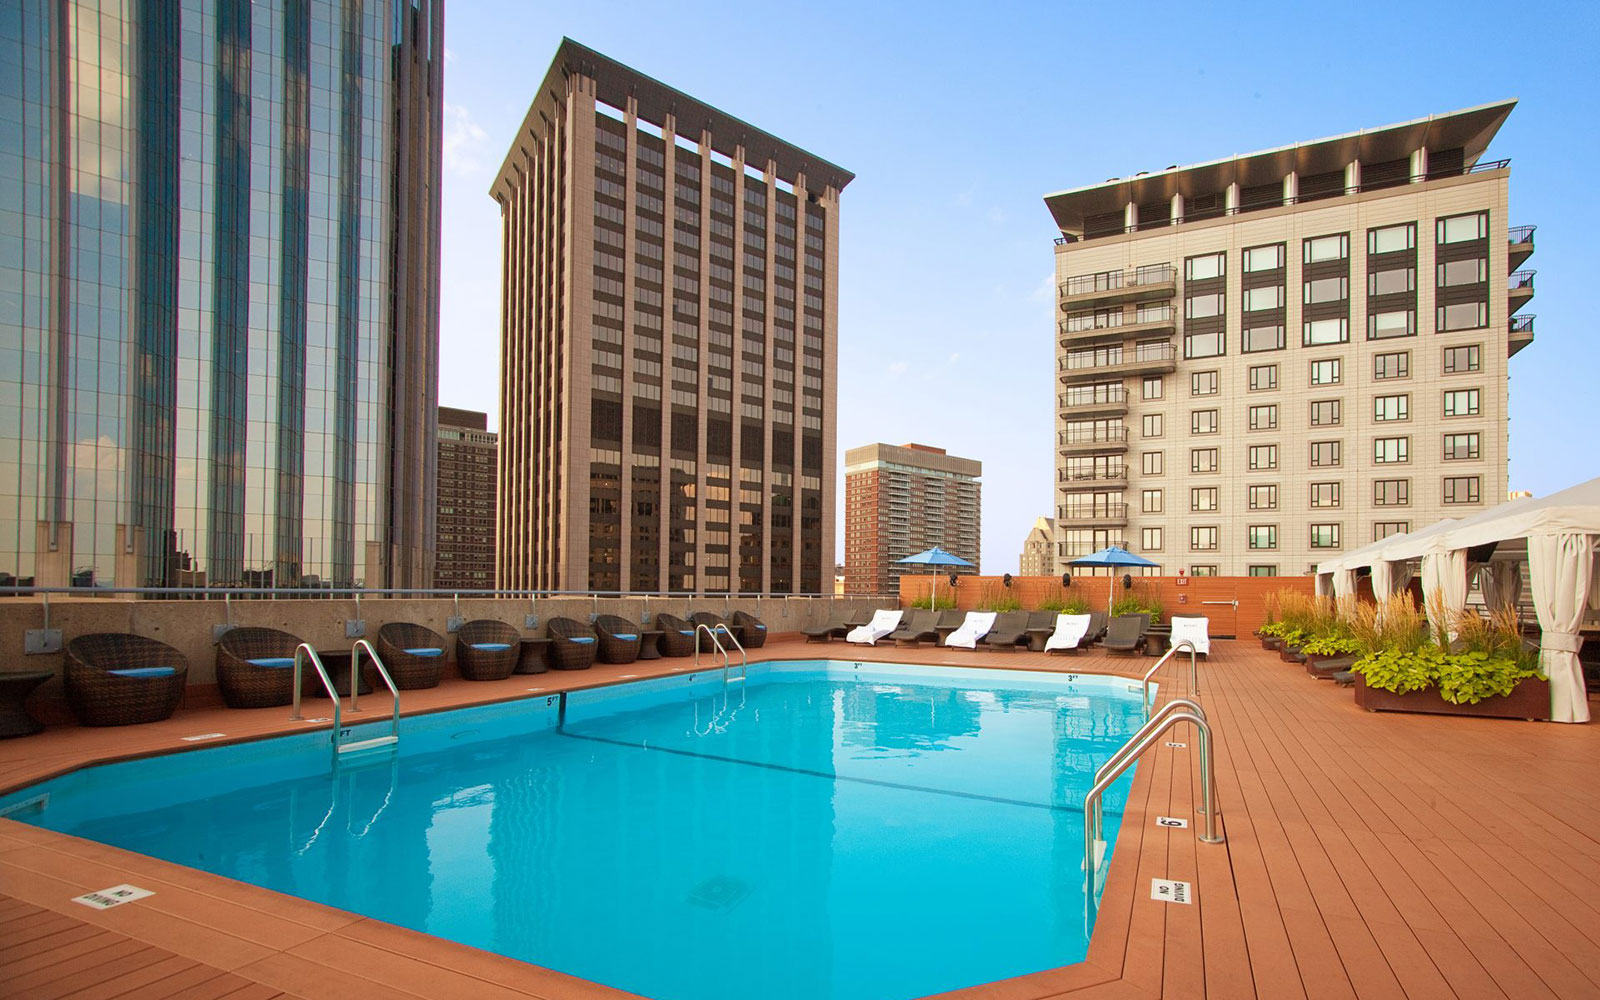 Take a Dip in These Amazing Hotel Pools: No Check-In Required: The Colonnade Hotel, Boston